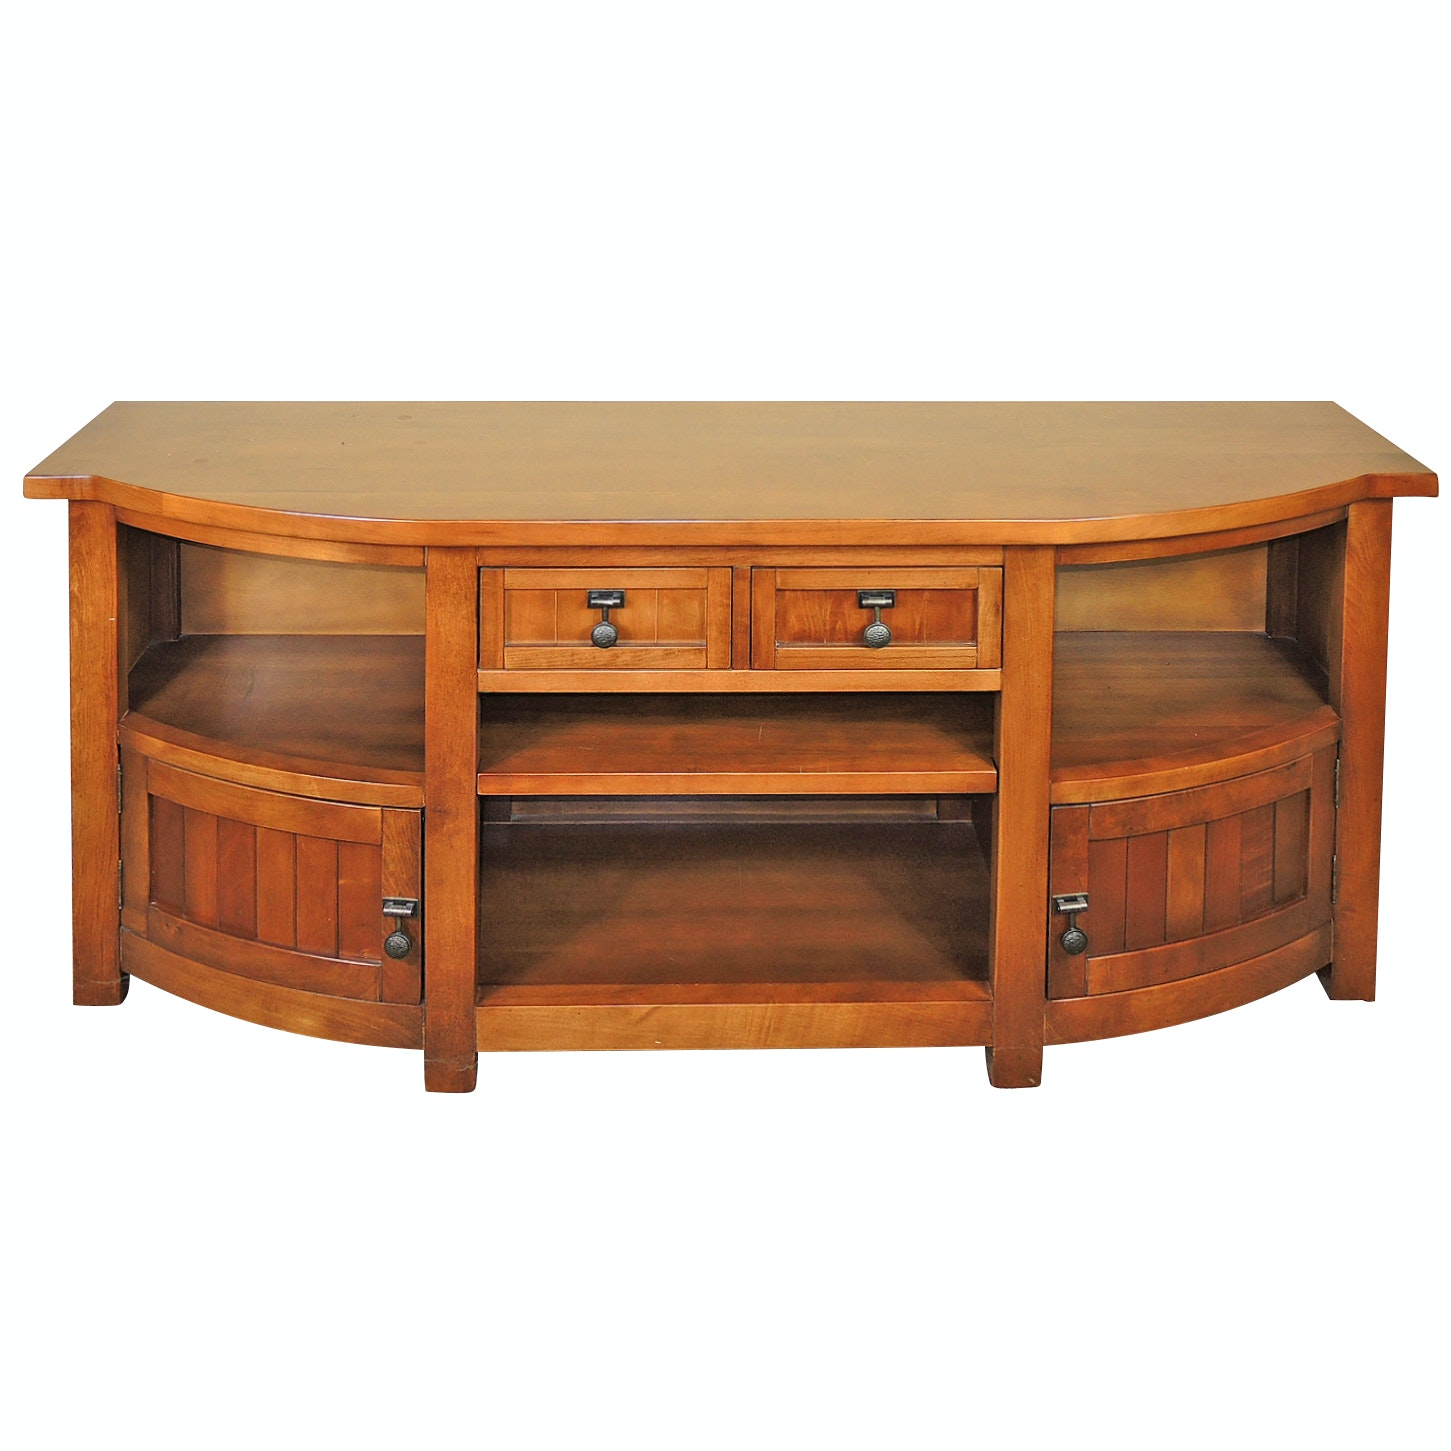 Contemporary Andes International Inc. Wooden Credenza